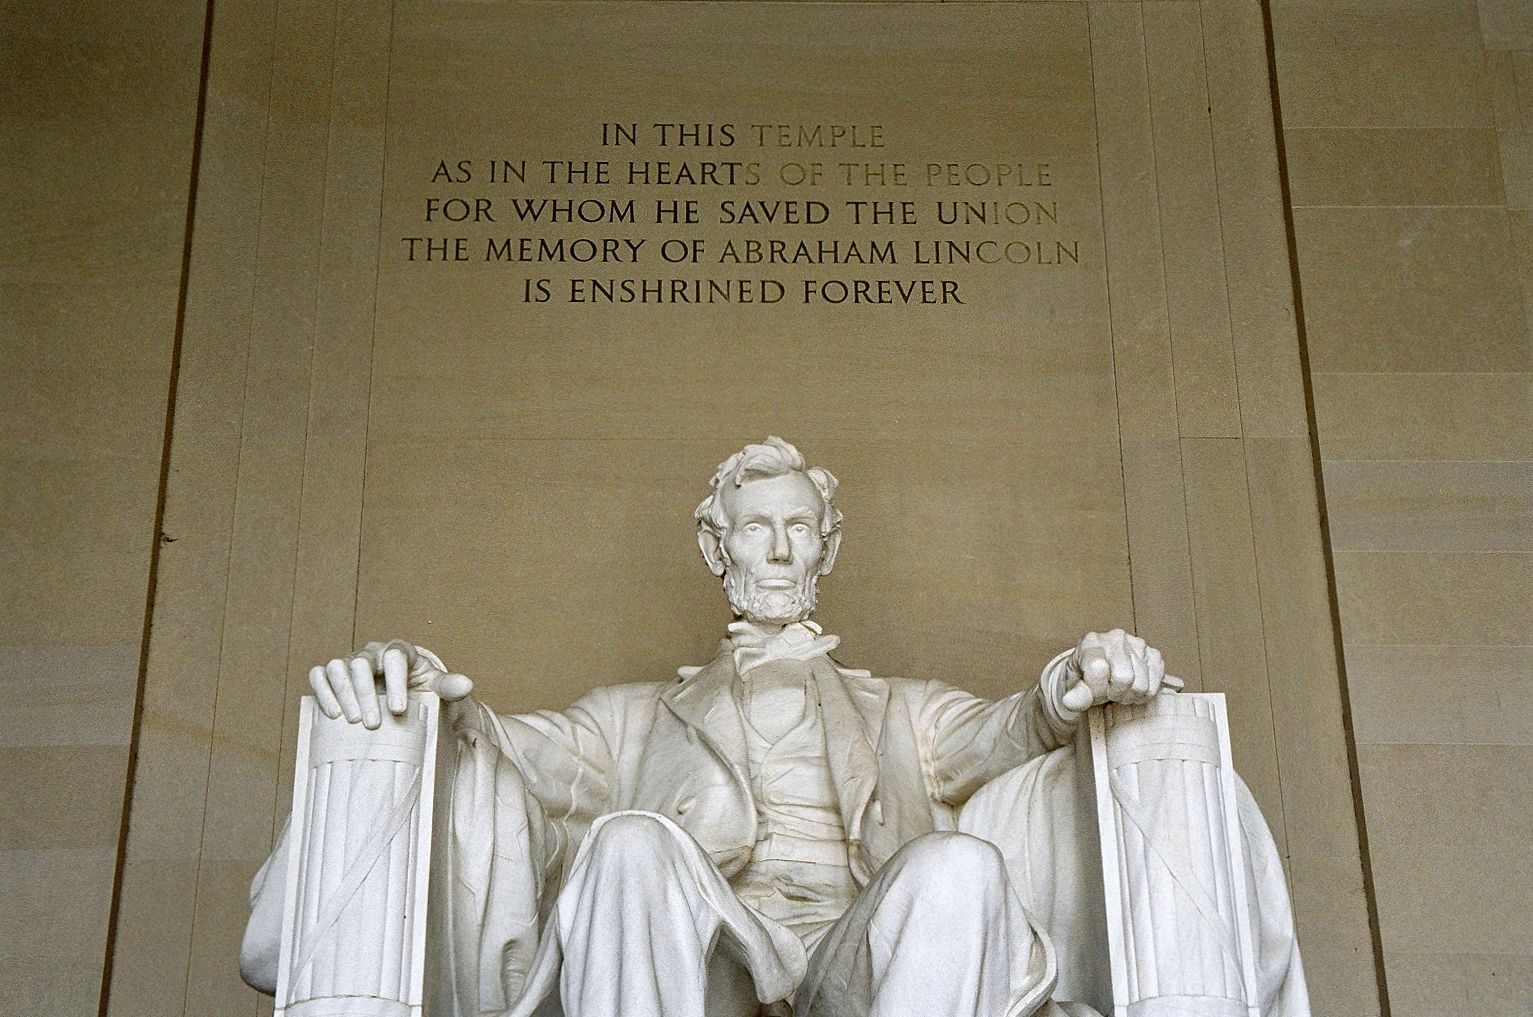 file:abraham lincoln memorial - washington dc - wikimedia commons